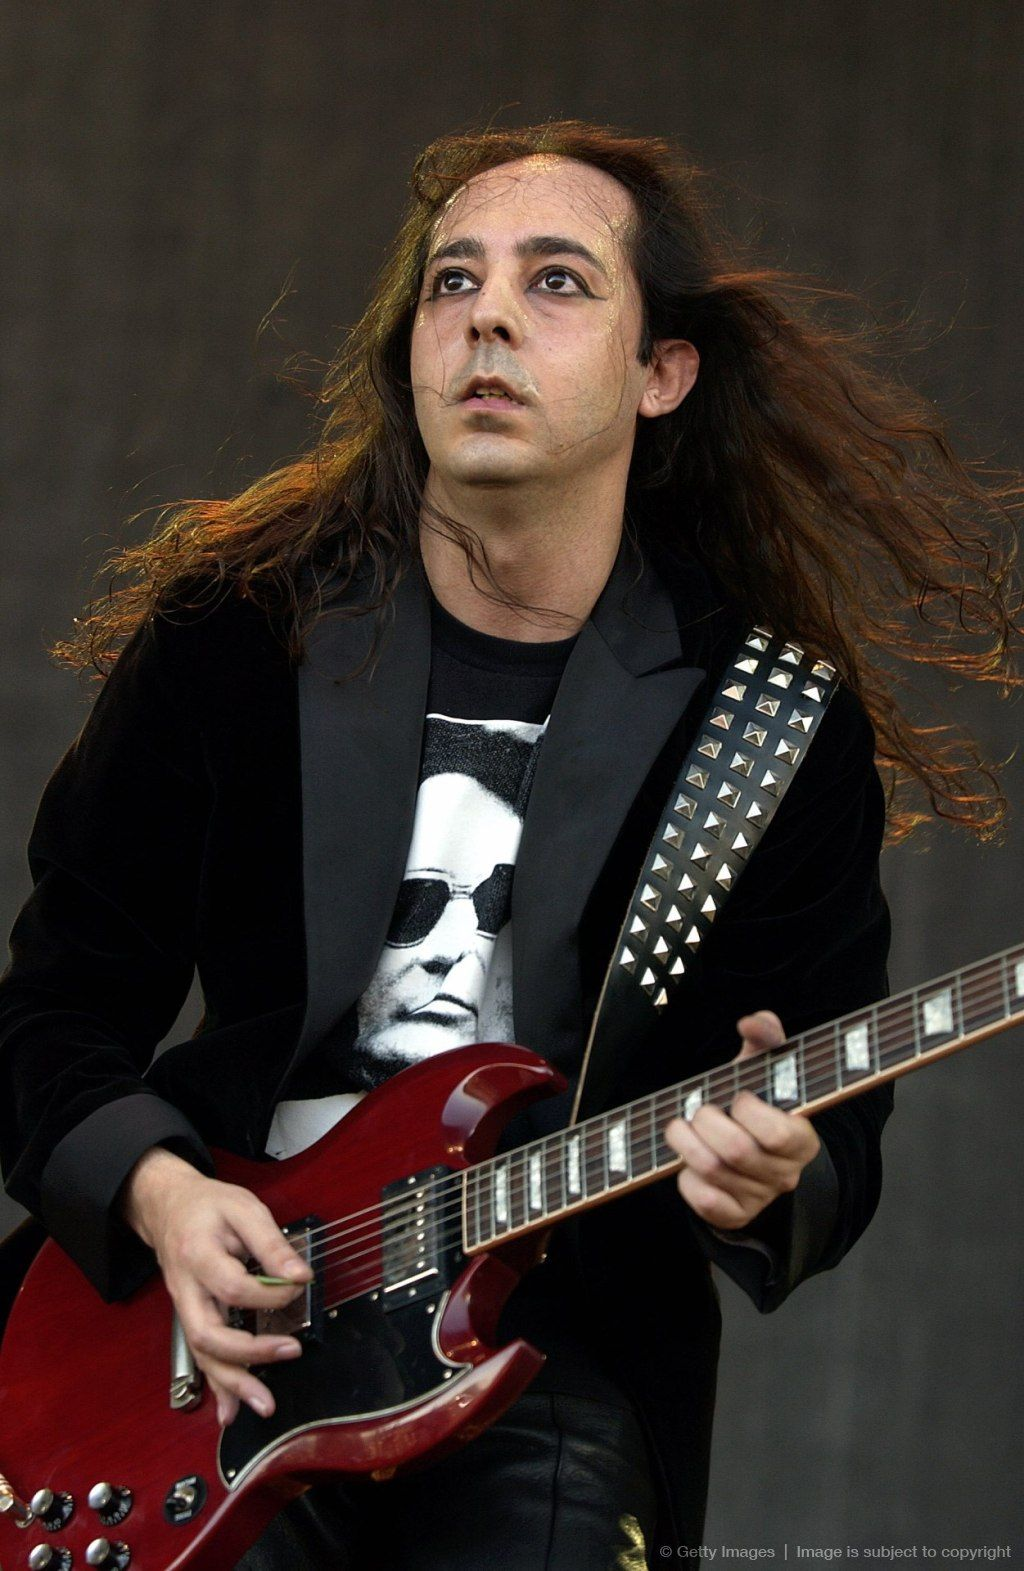 This Is Daron Malakian Photo In 2019 System Of A Down